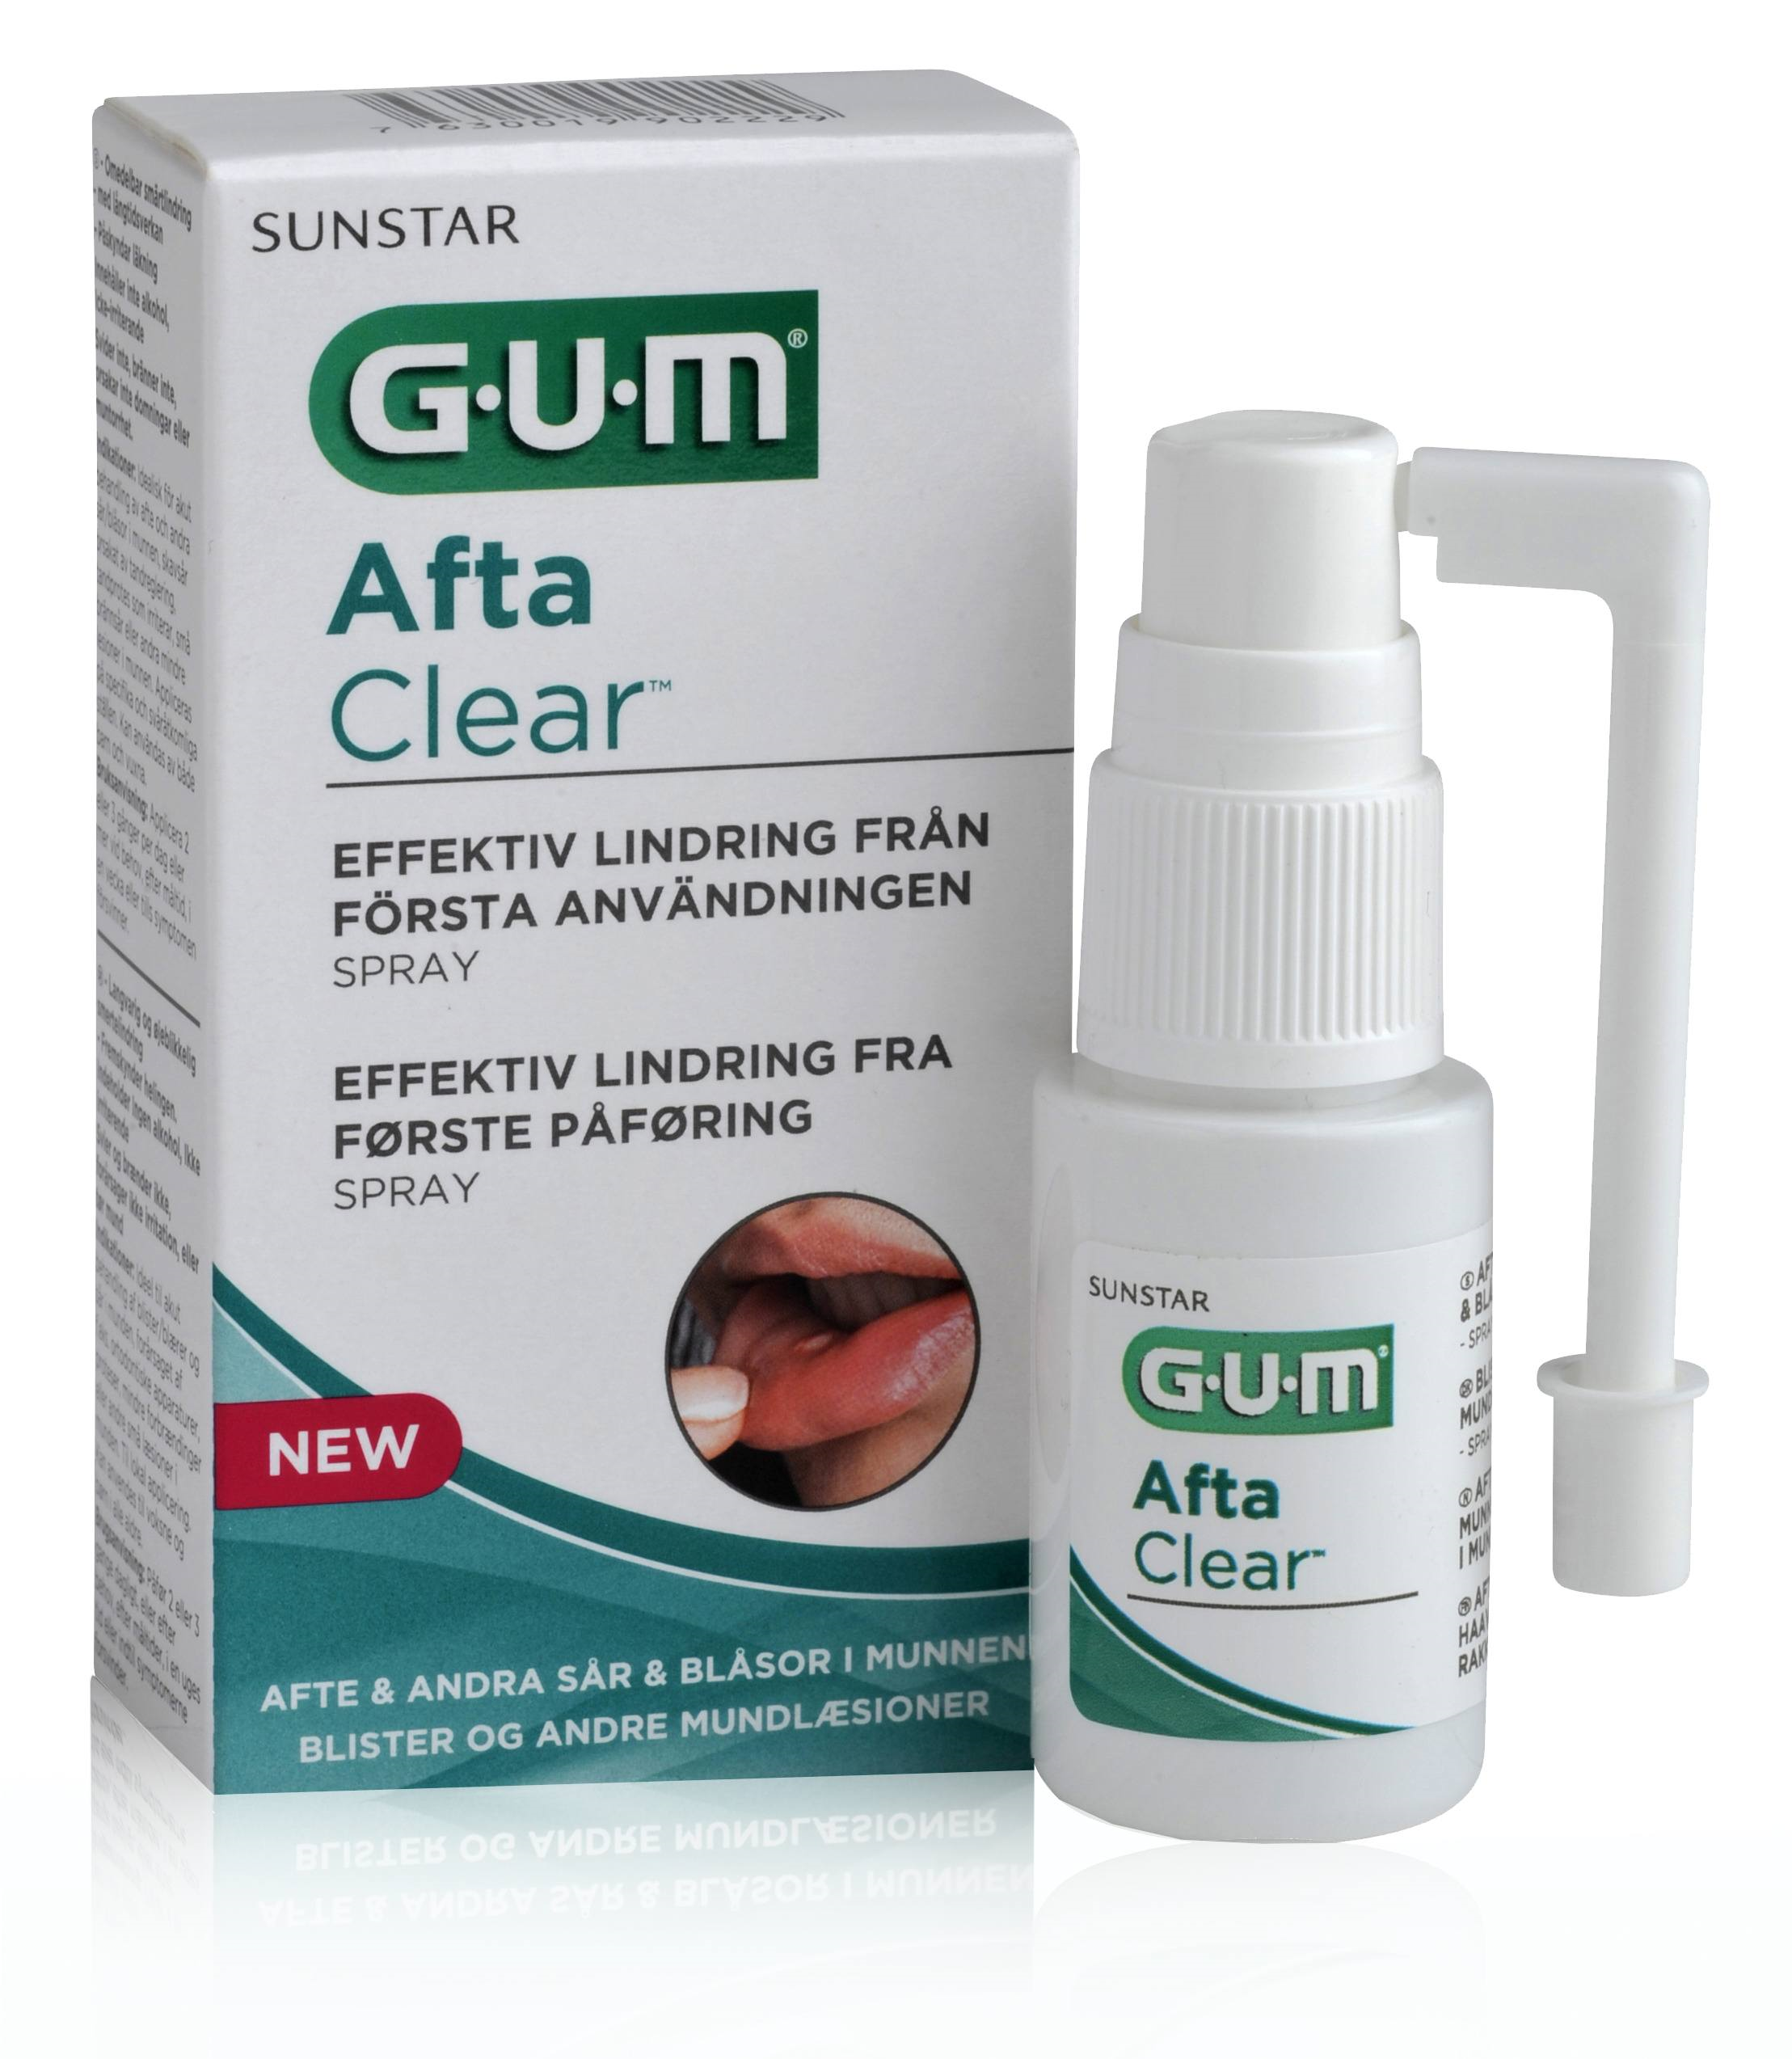 GUM AftaClear, spray, 15 ml